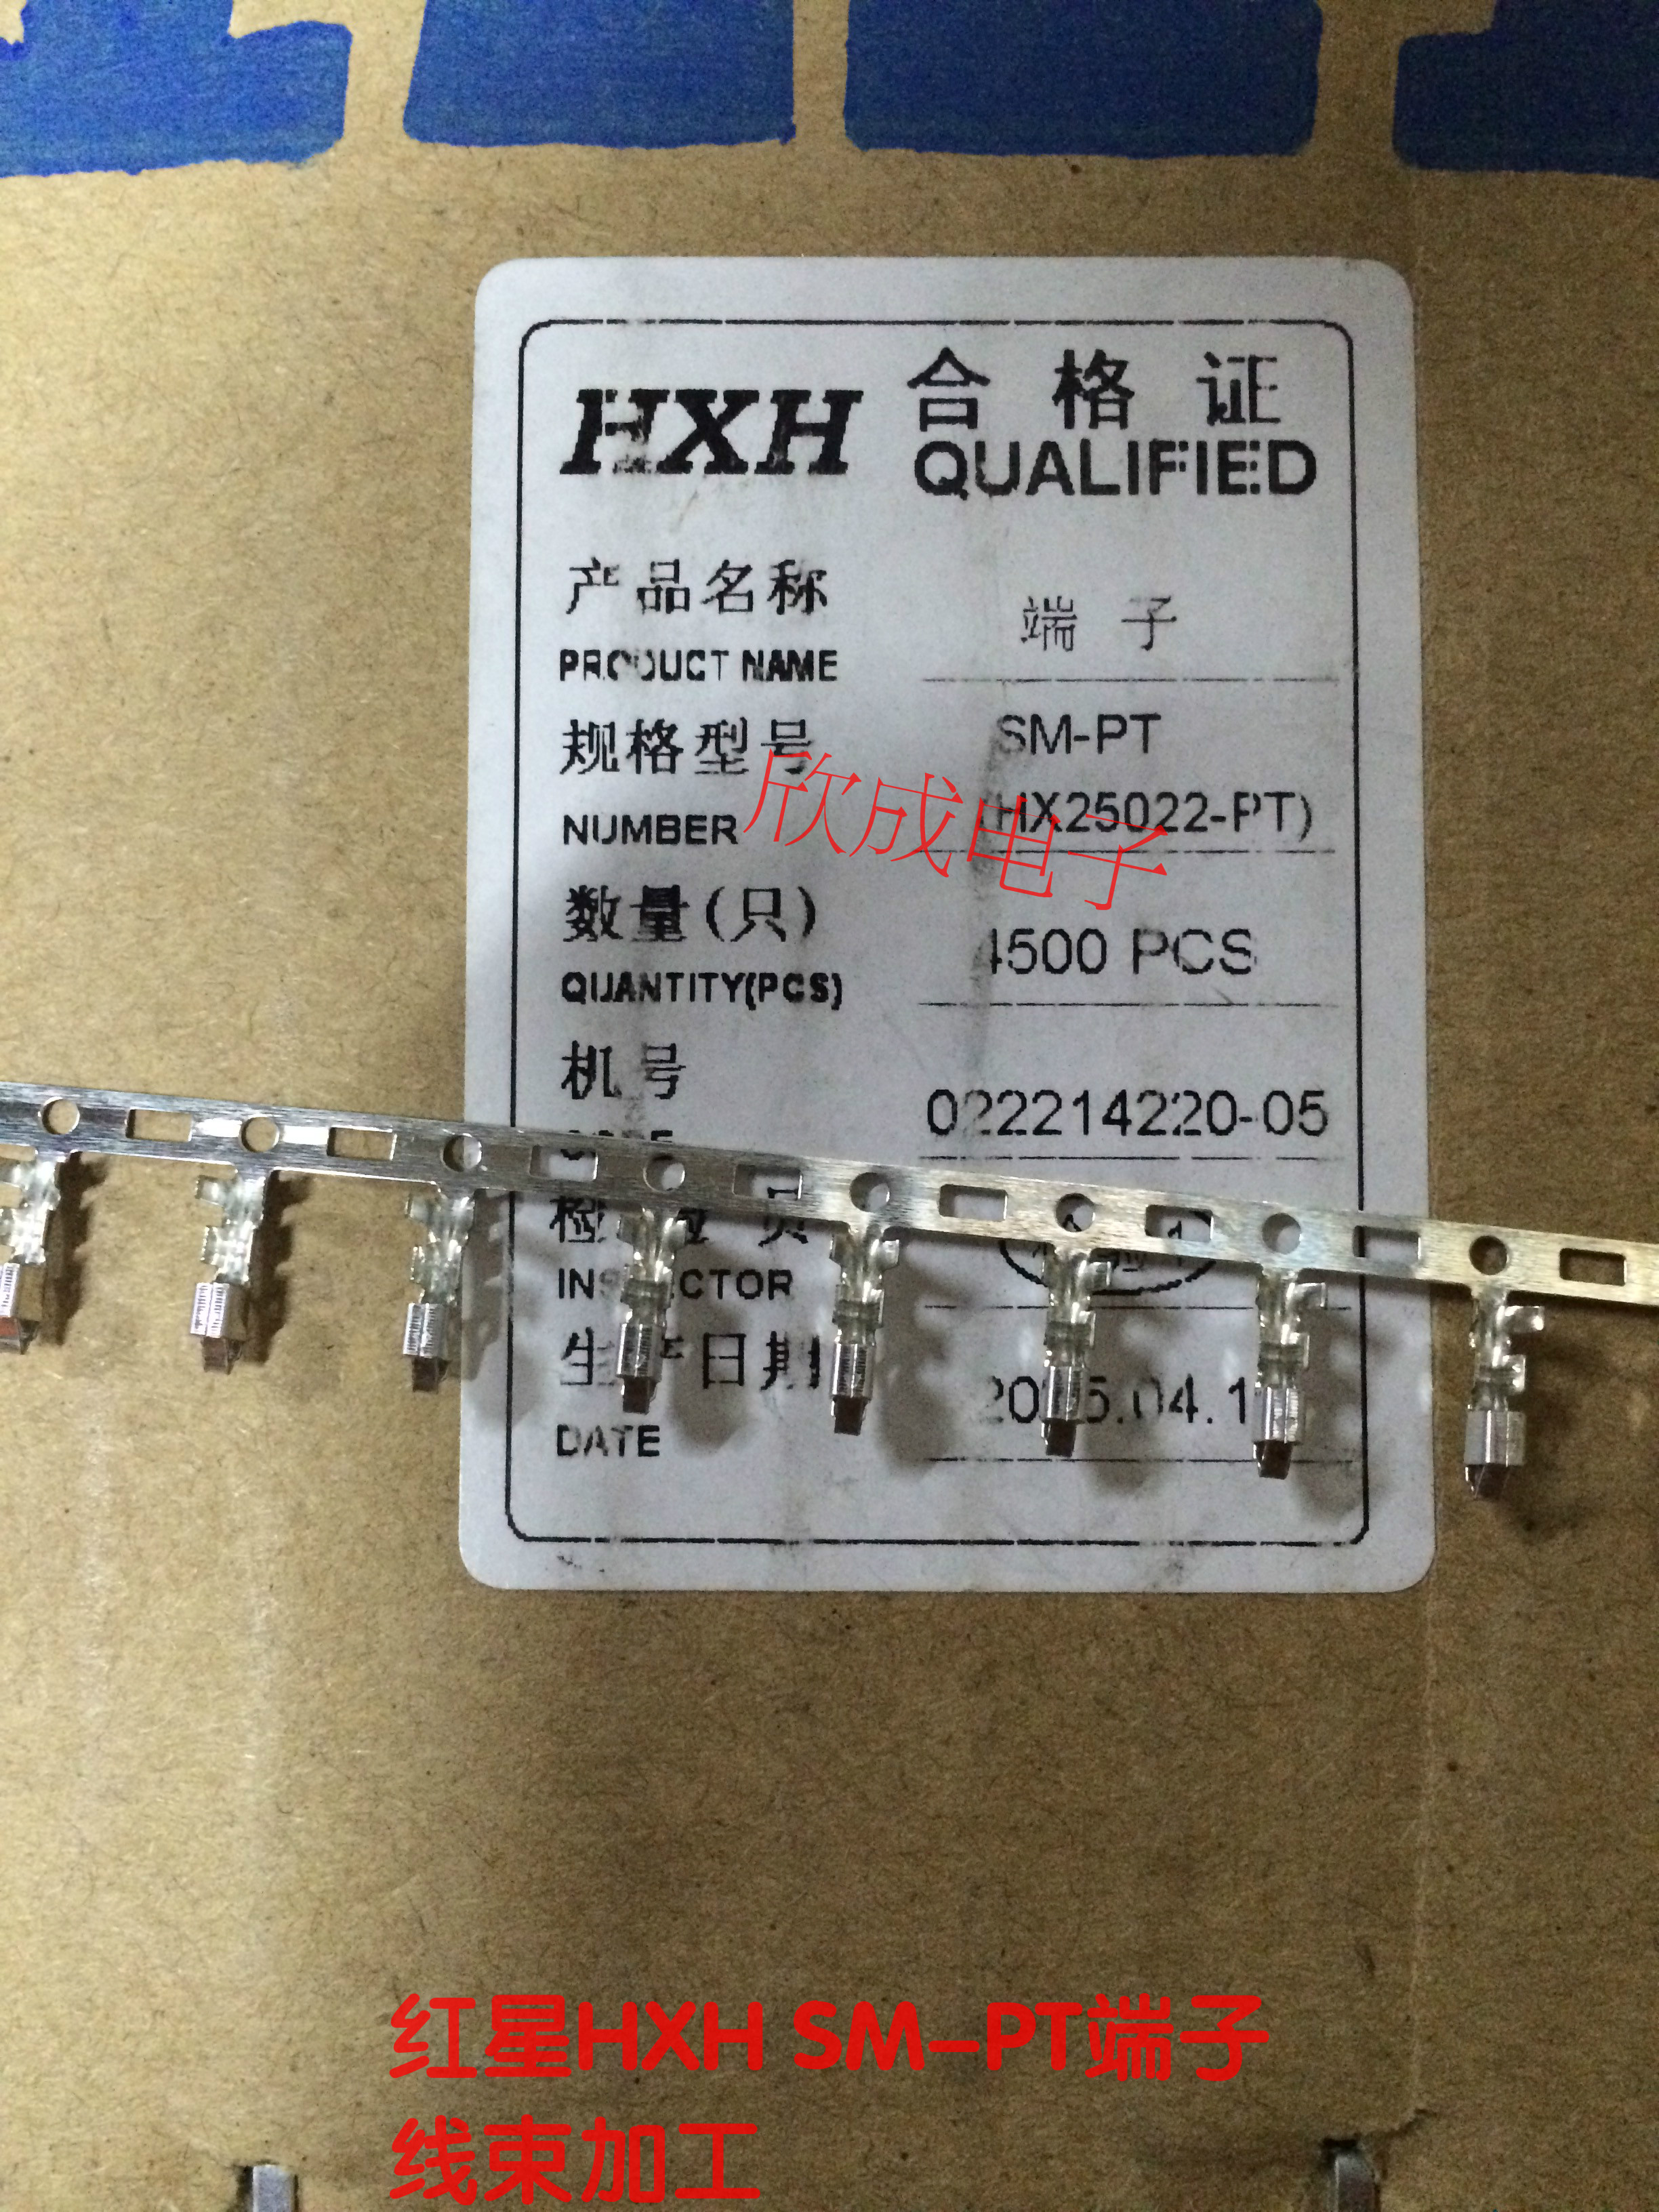 connector pin pin joint terminal sm pt terminal 2 54mm wire connector pin pin joint terminal sm pt terminal 2 54mm wire harness connector